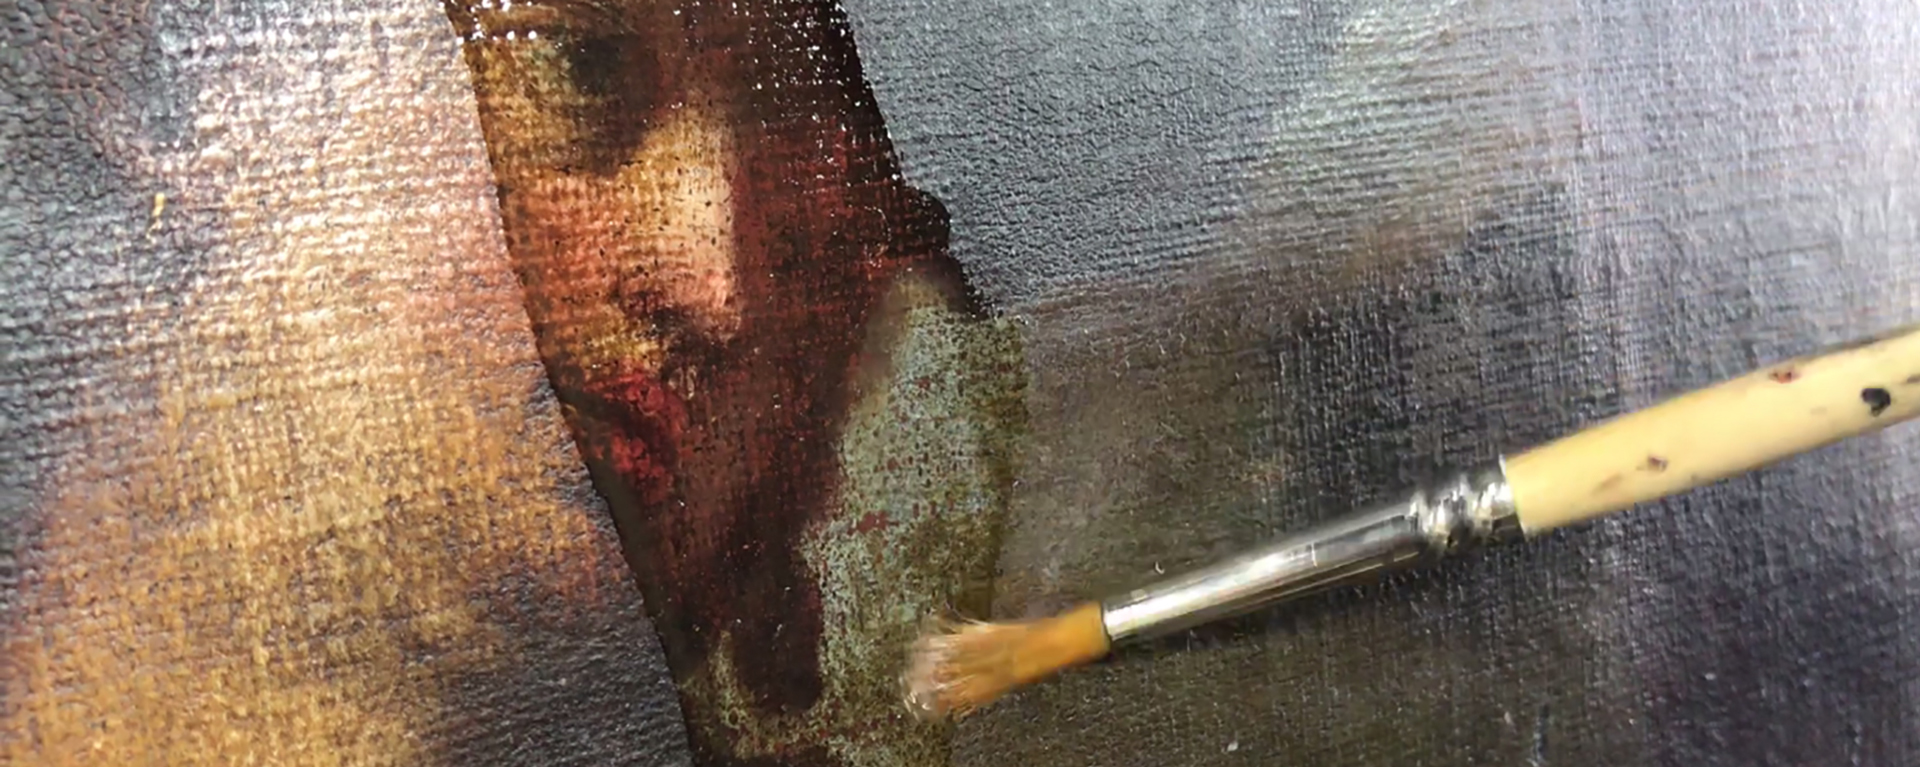 closeup photo of a paint brush cleaning a painting